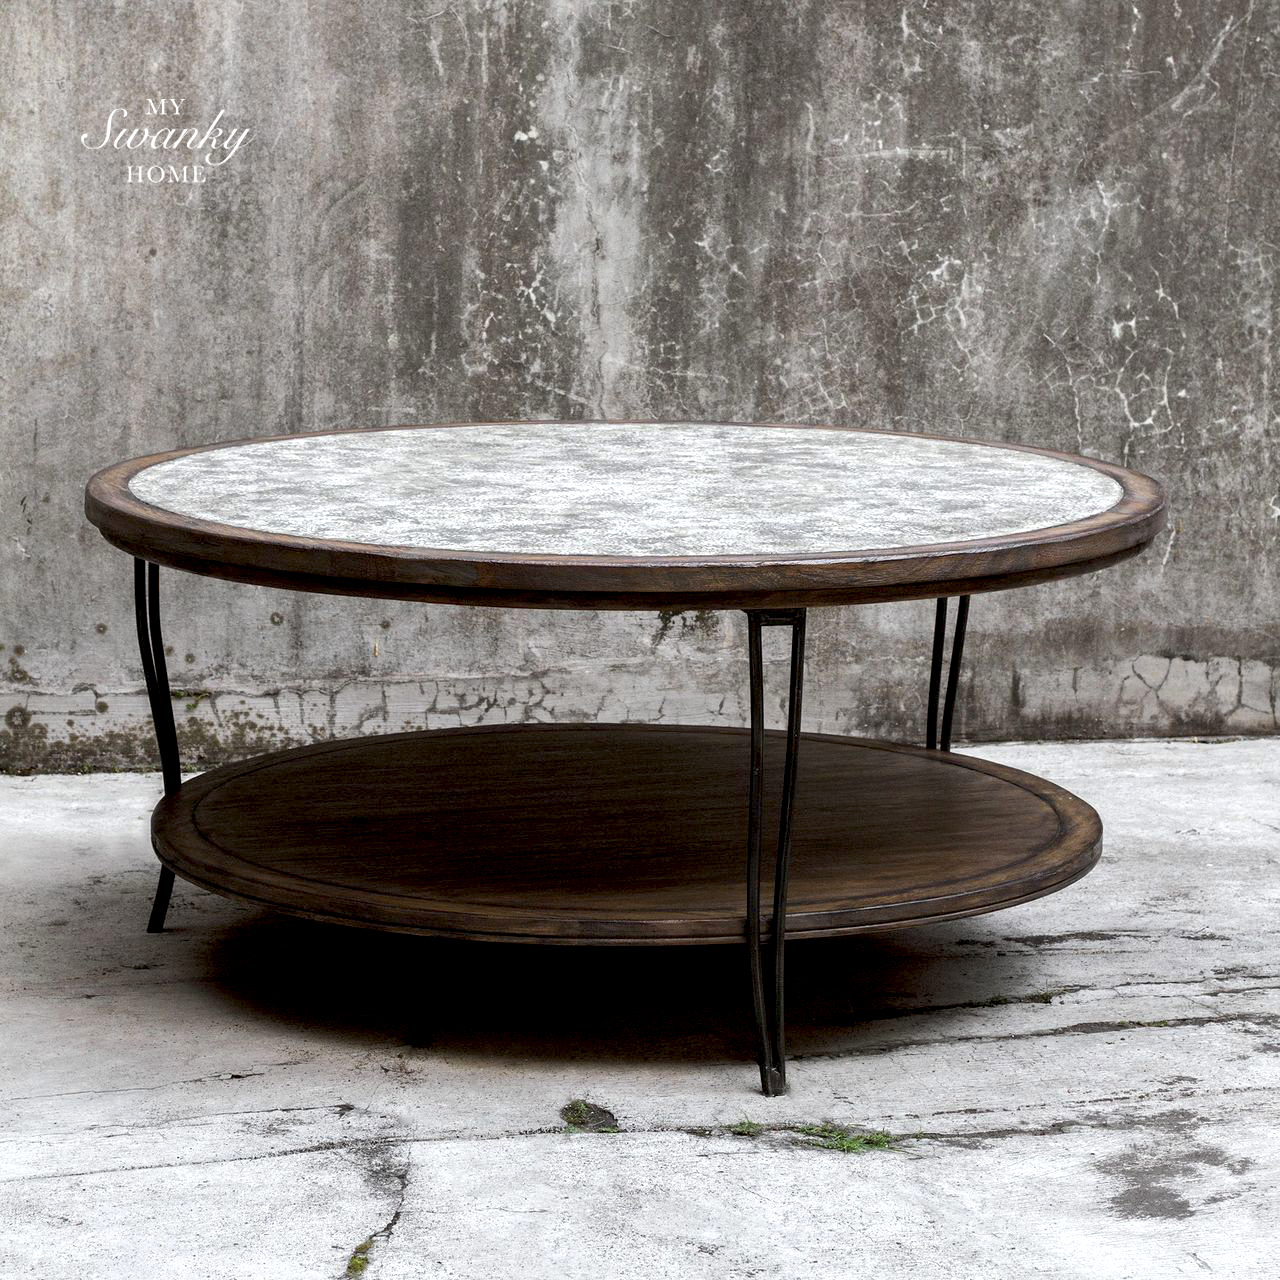 Rustic Industrial Wood Metal Coffee Table Round Shelf Gray Cottage Rustic Coffee Tables Round Metal Coffee Table Coffee Table [ 1280 x 1280 Pixel ]